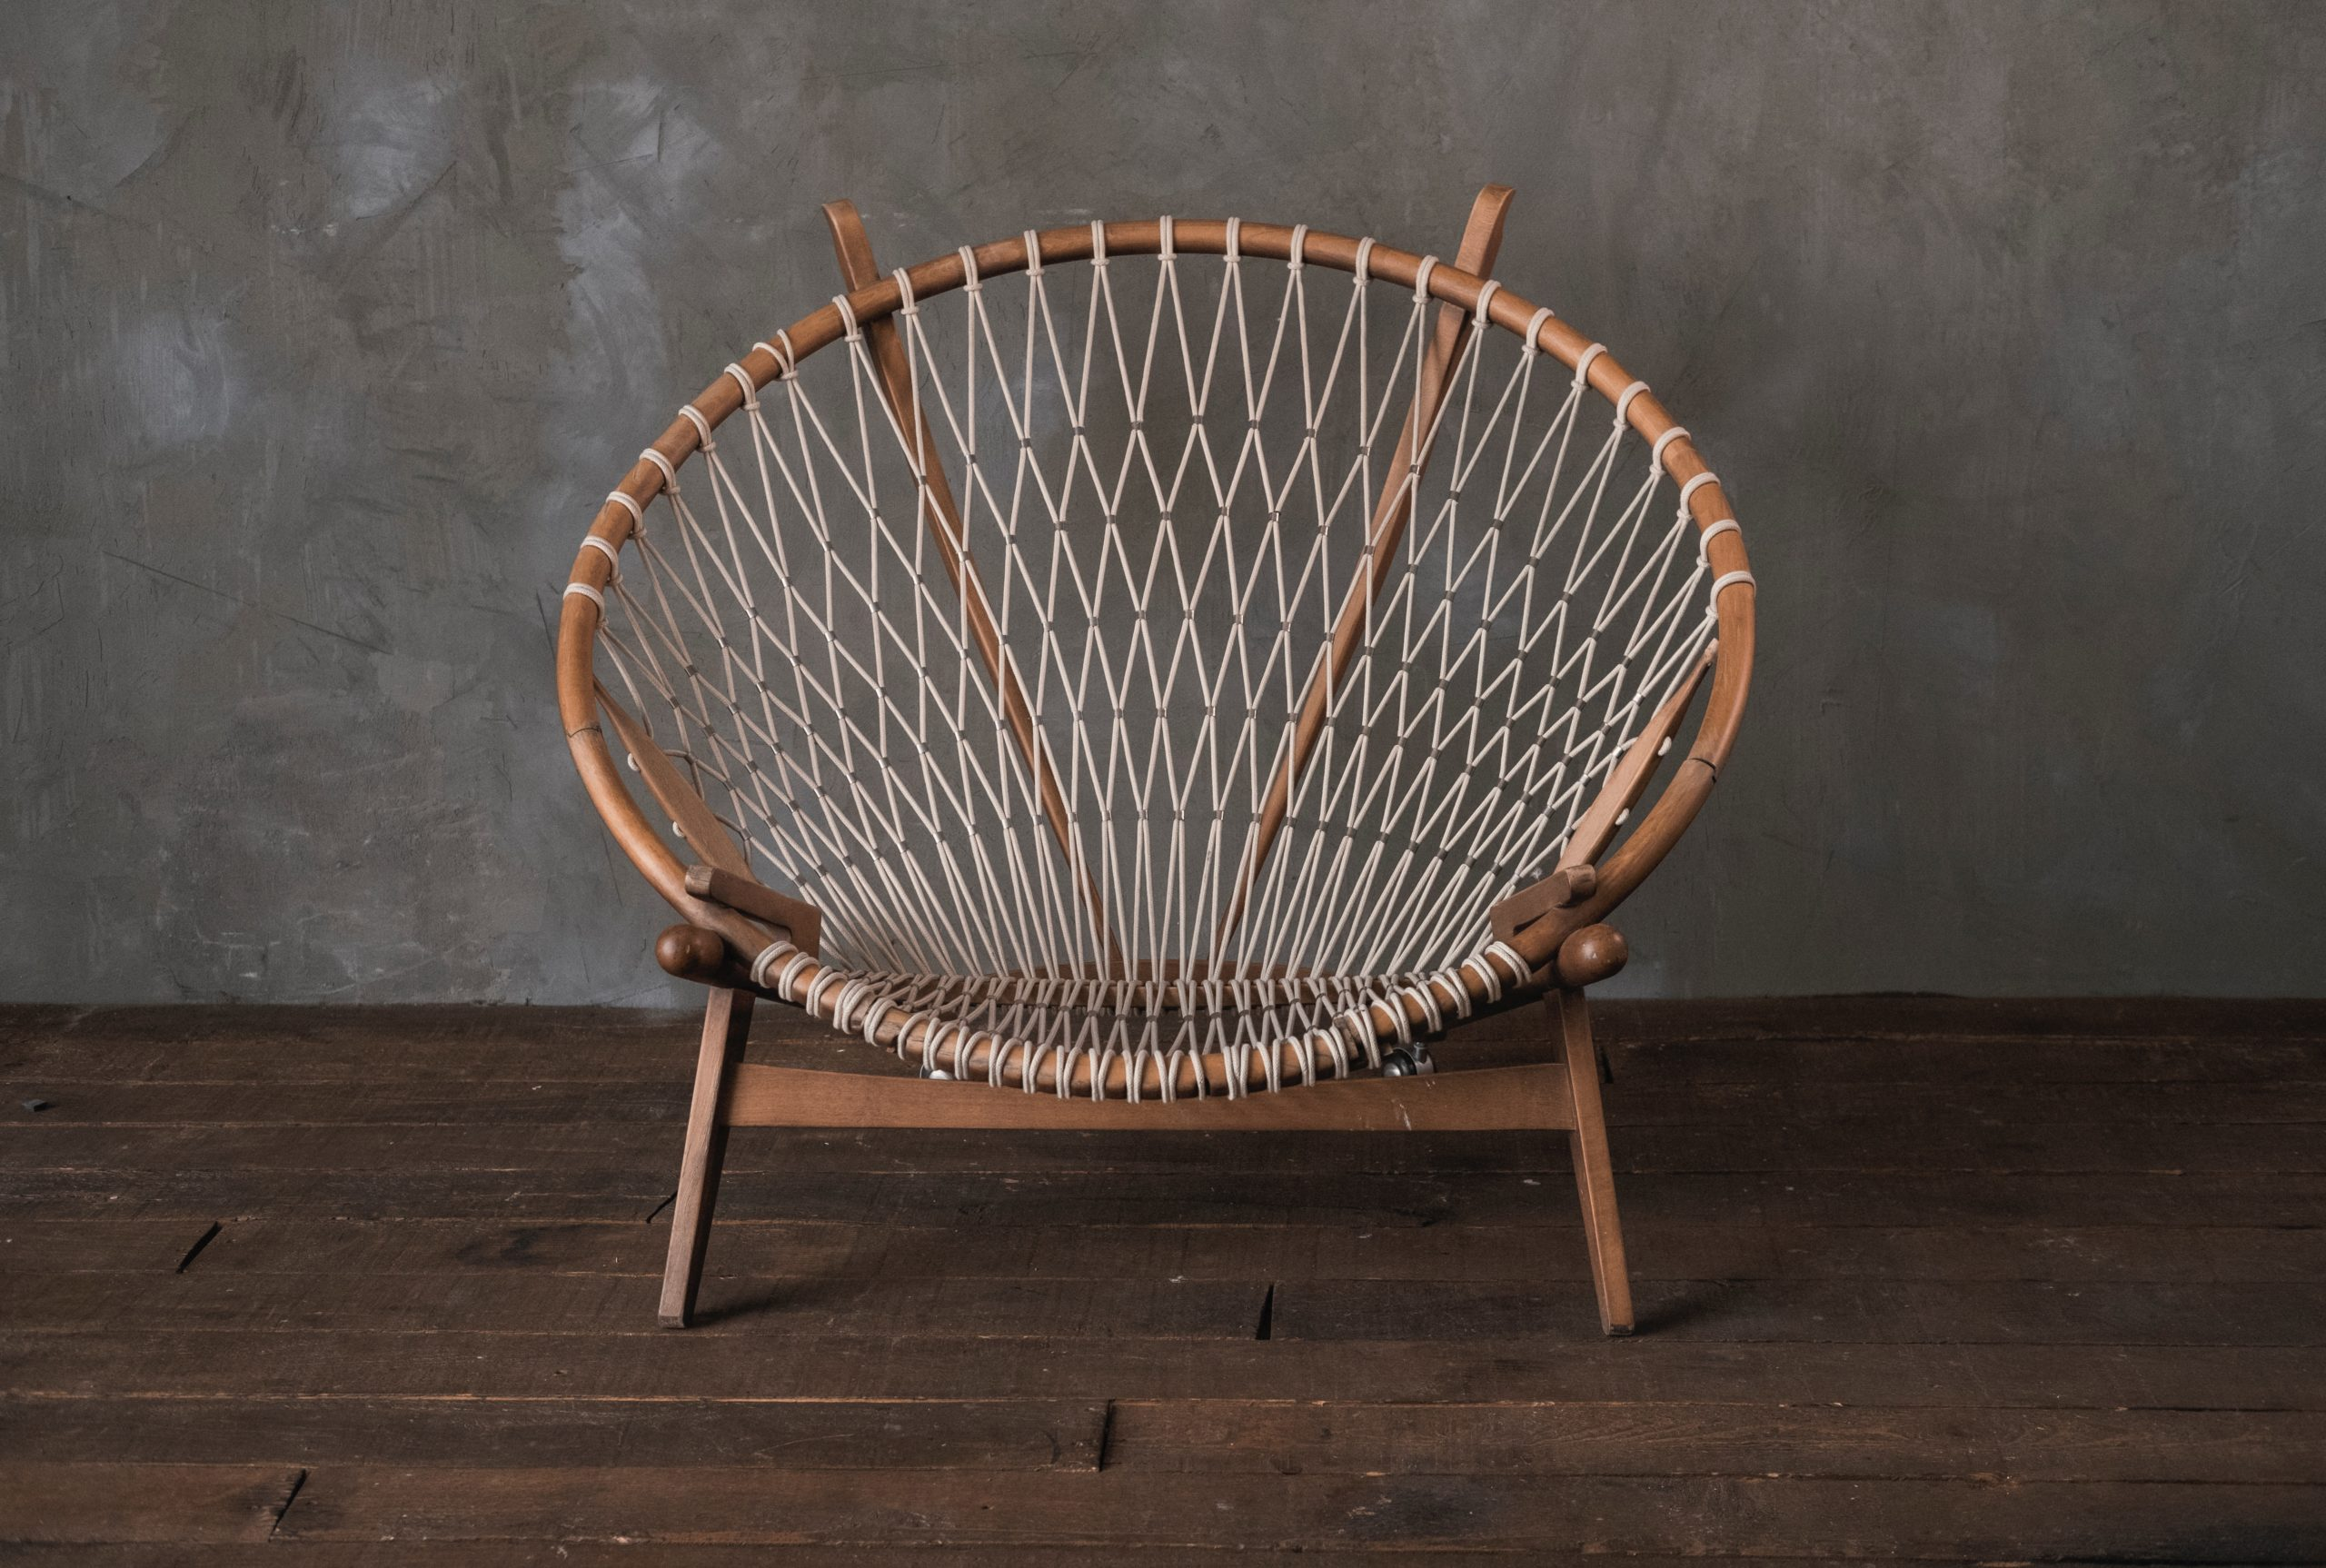 A chair with a wood frame and a rope seat